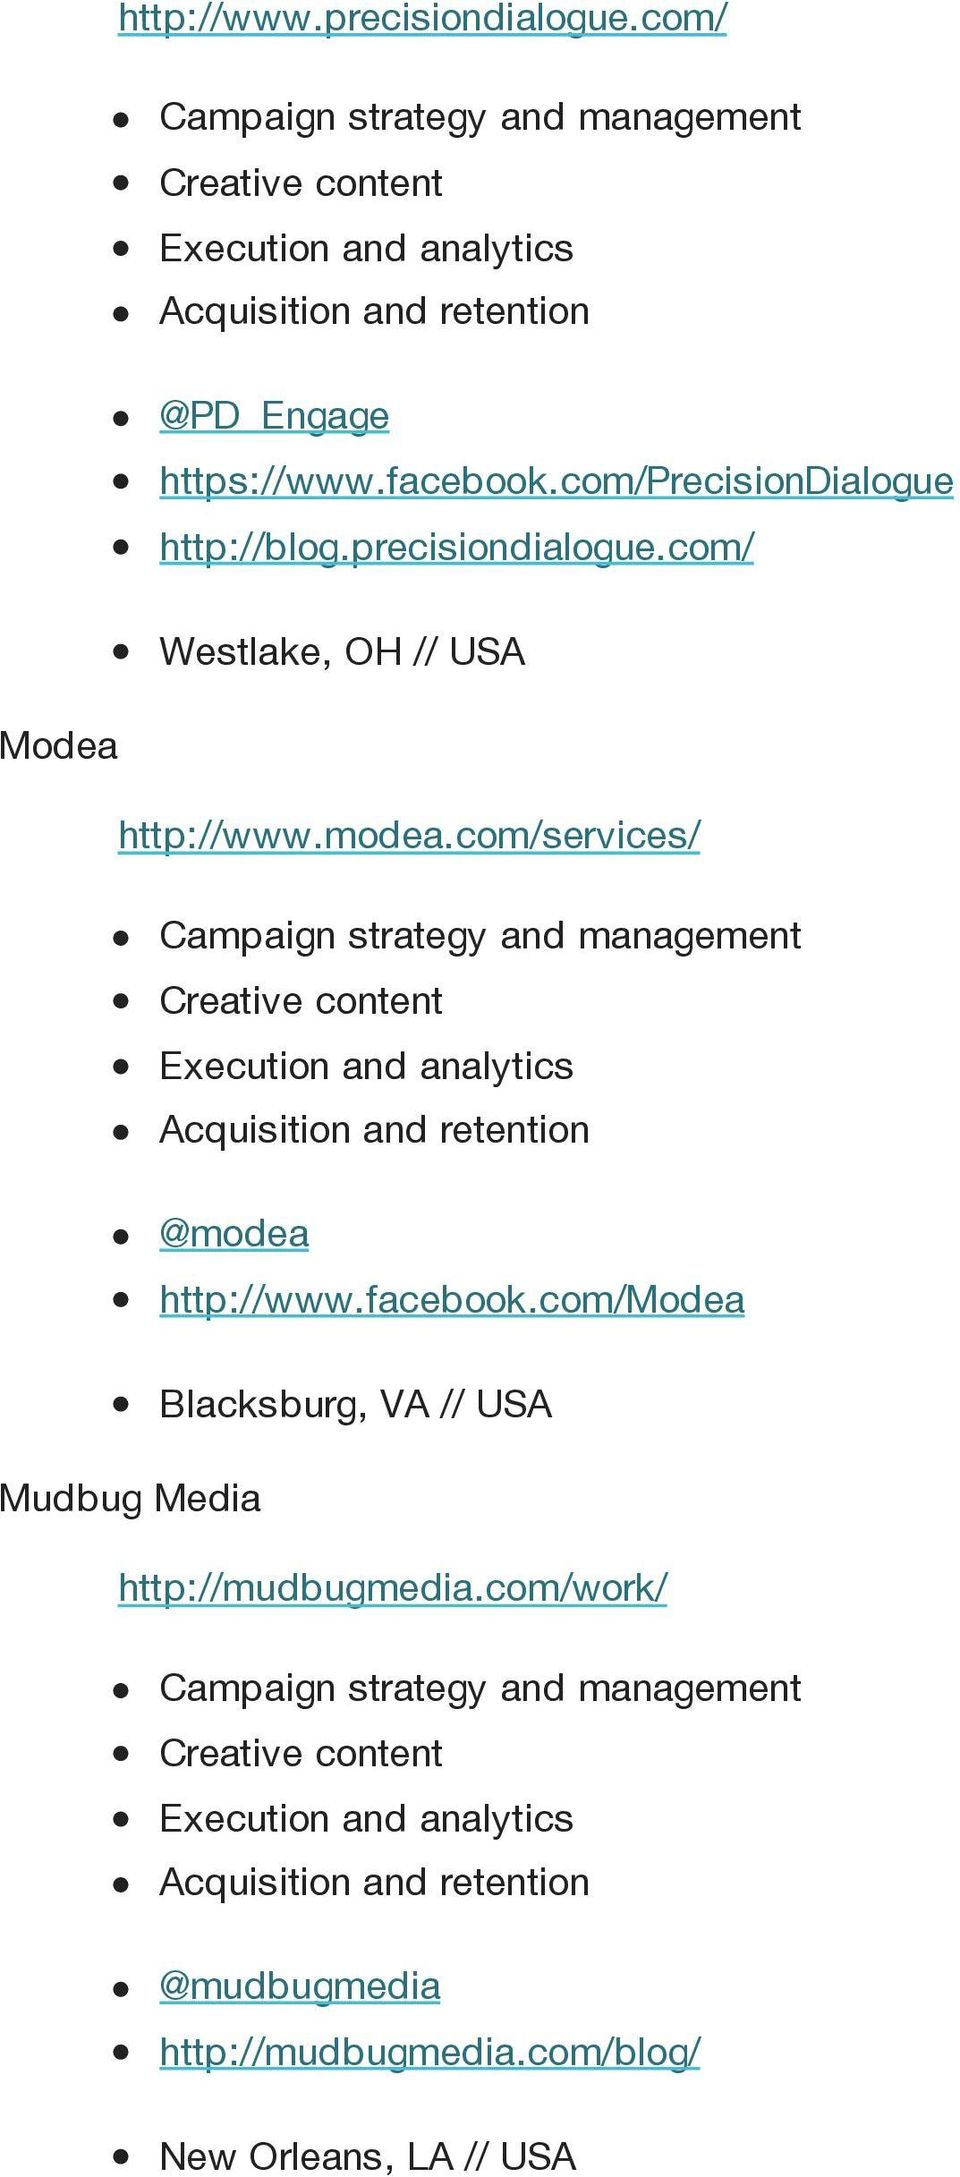 com/services/ Campaign strategy and management Creative content Execution and analytics Acquisition and retention @modea http://www.facebook.